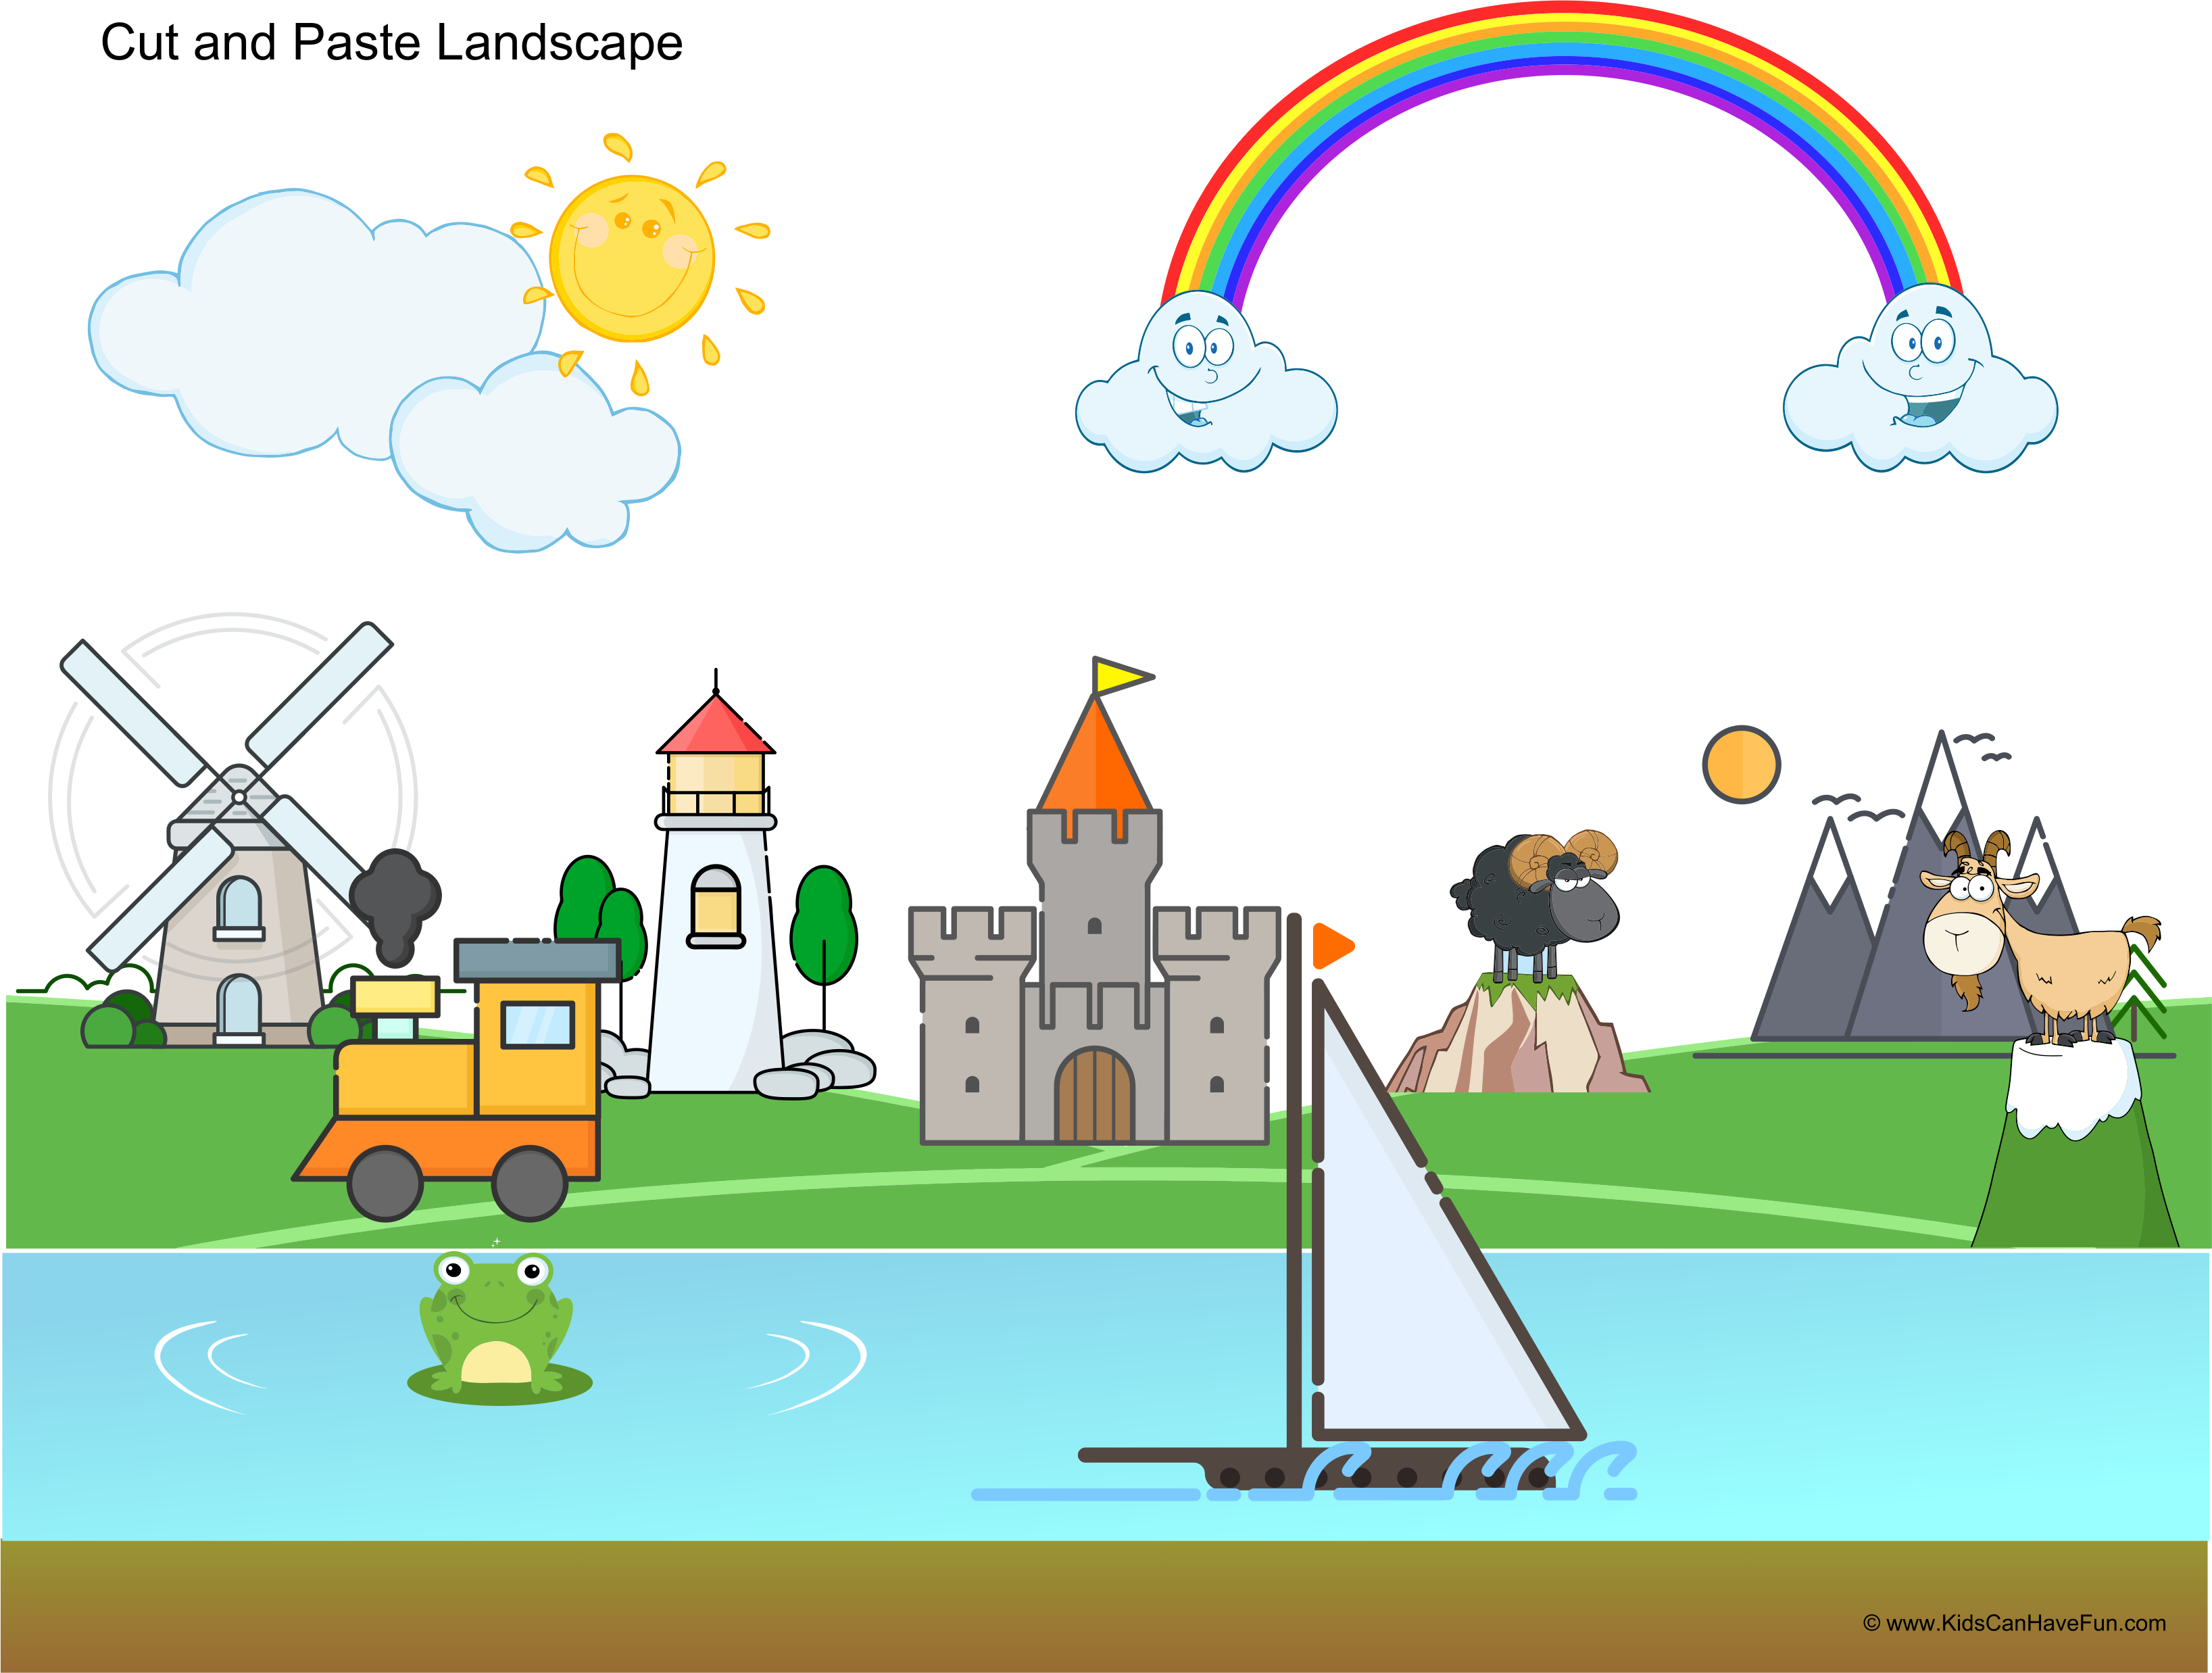 Cut And Paste Landscape Activity For Kids Cut Out The Pictures To Create A Landscape